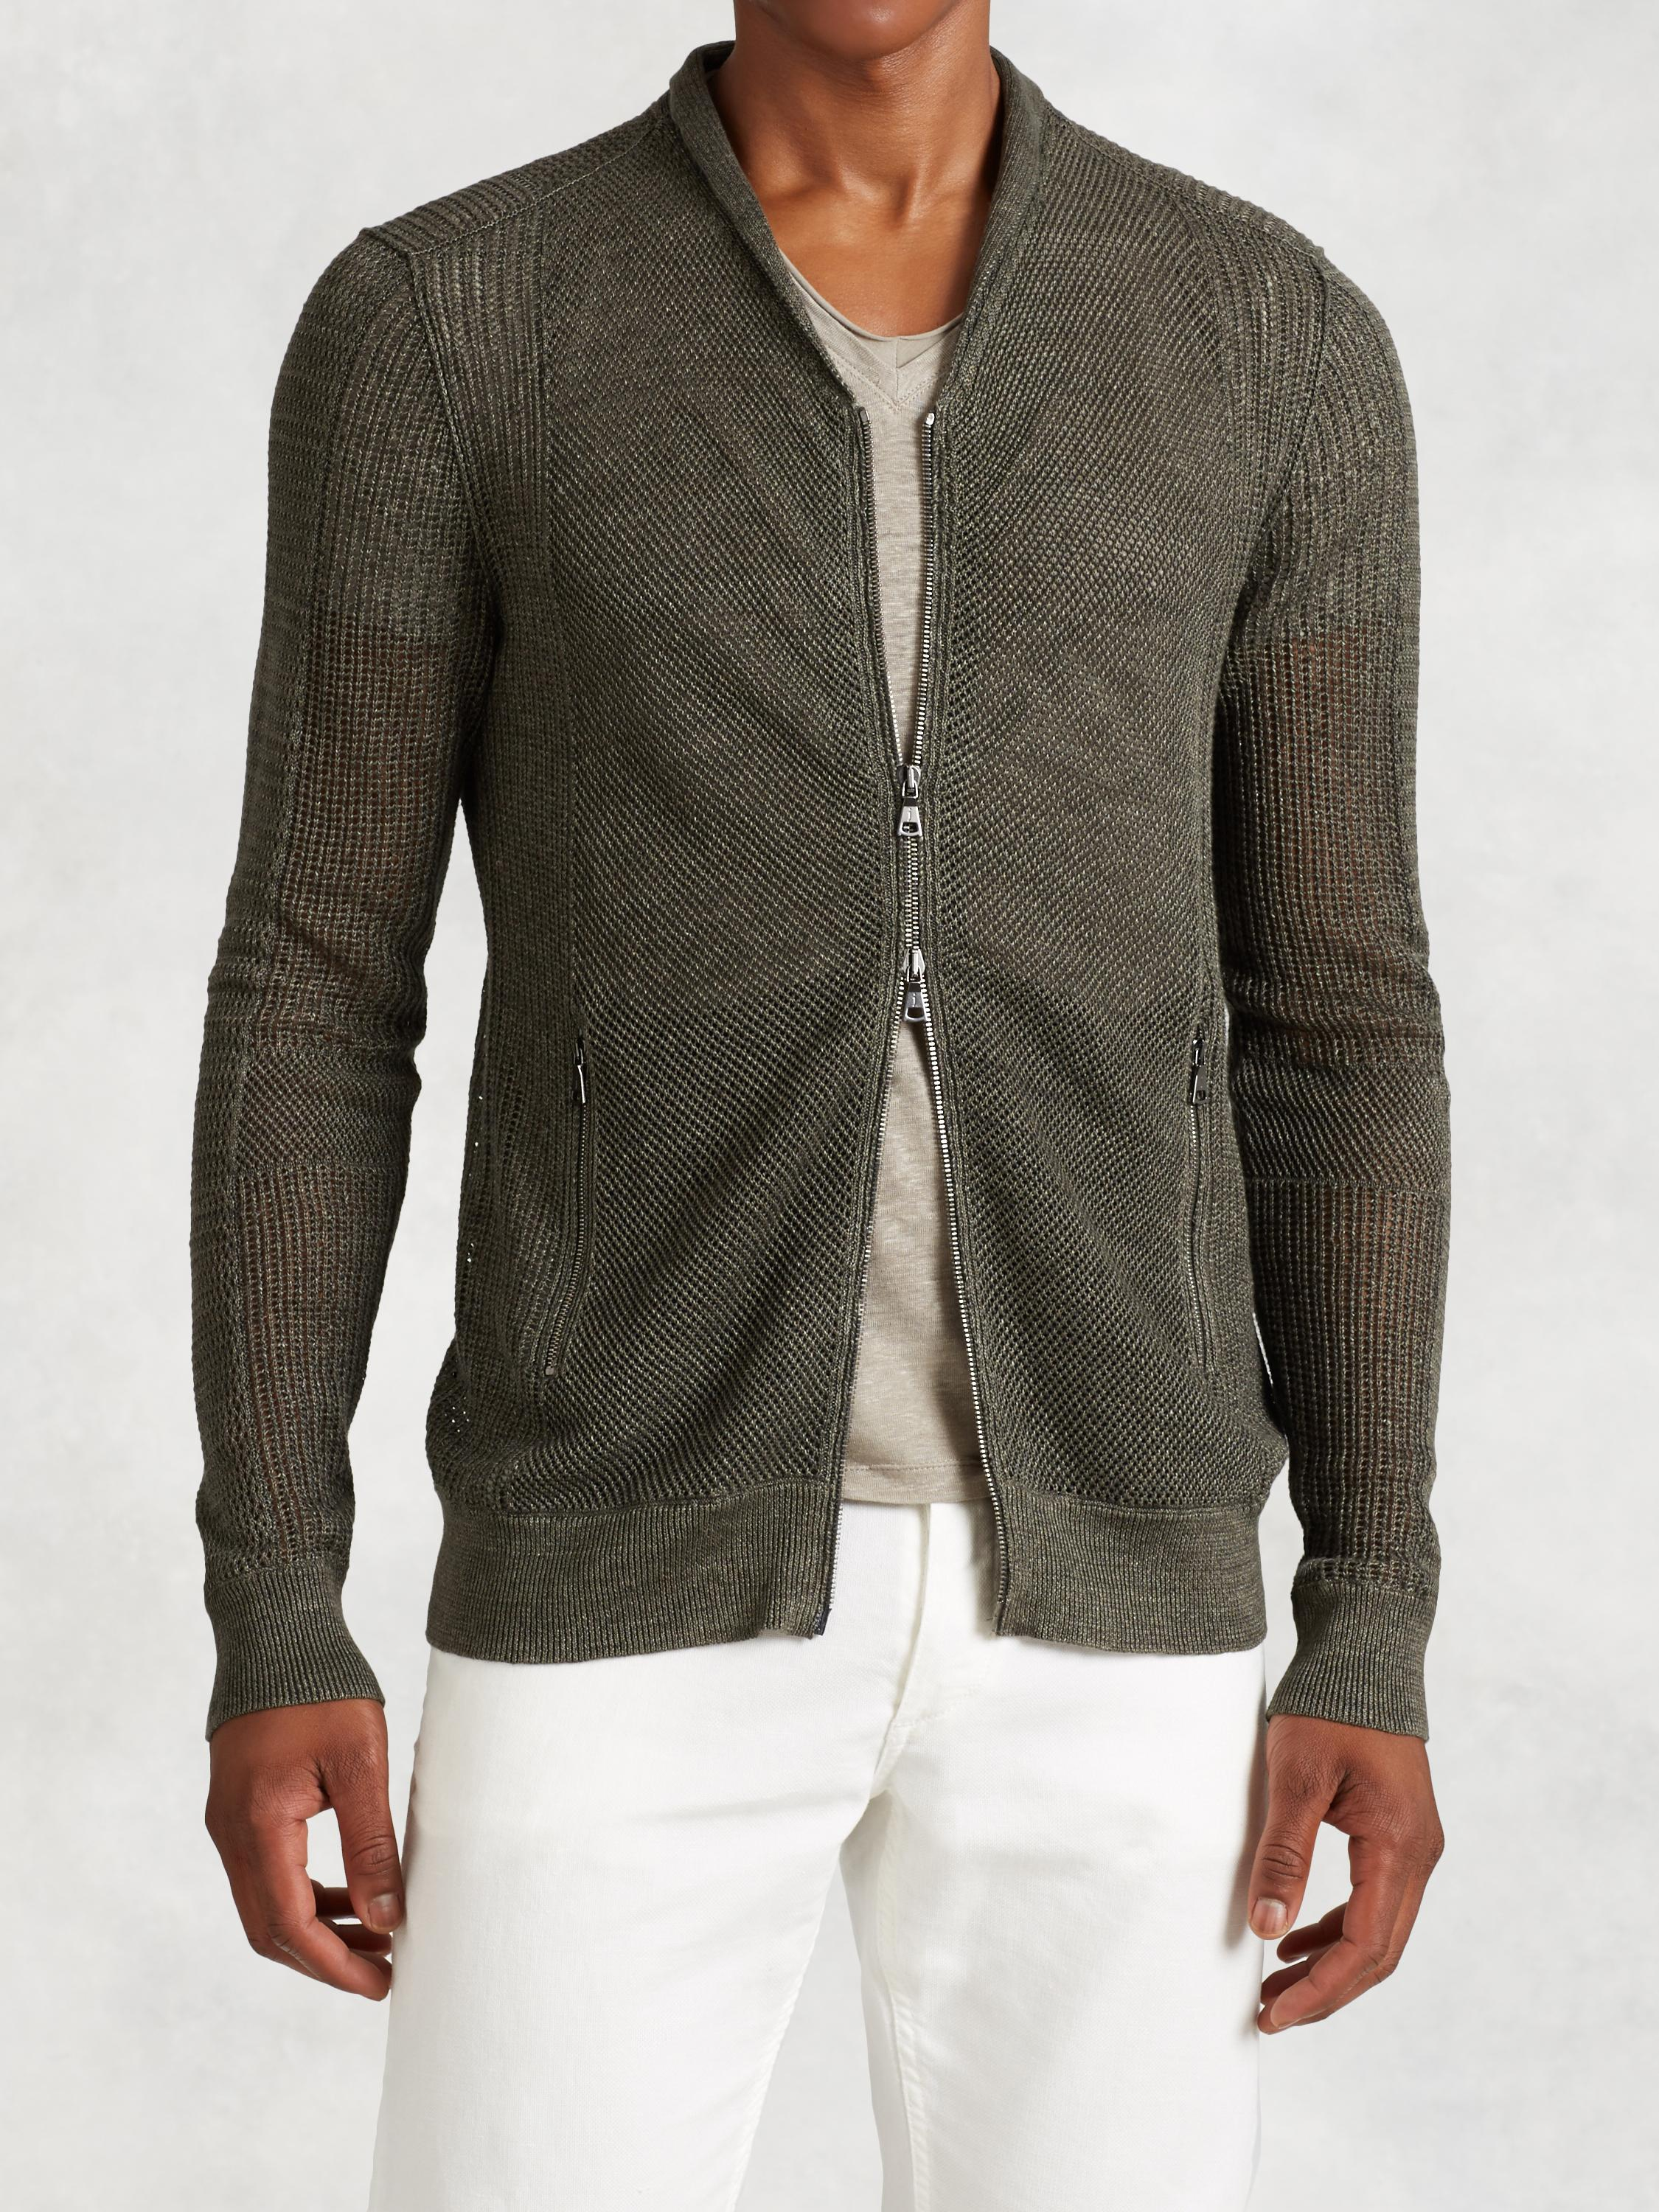 Linen Cotton Open Weave Cardigan